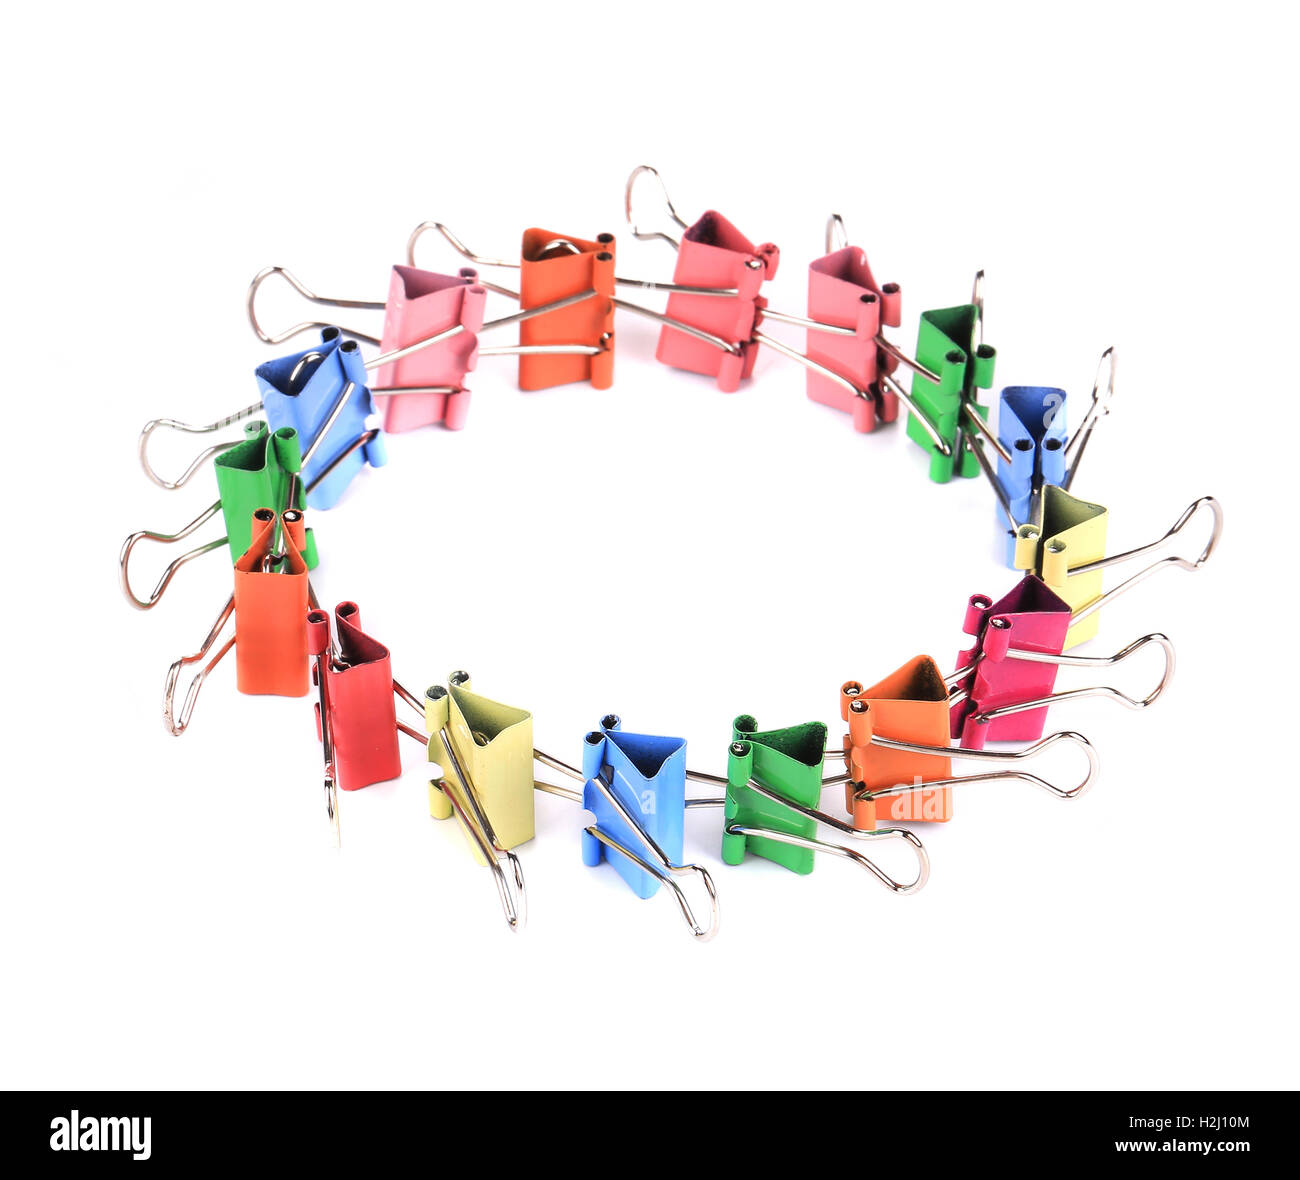 Colourful paper clips arranged into circle. - Stock Image